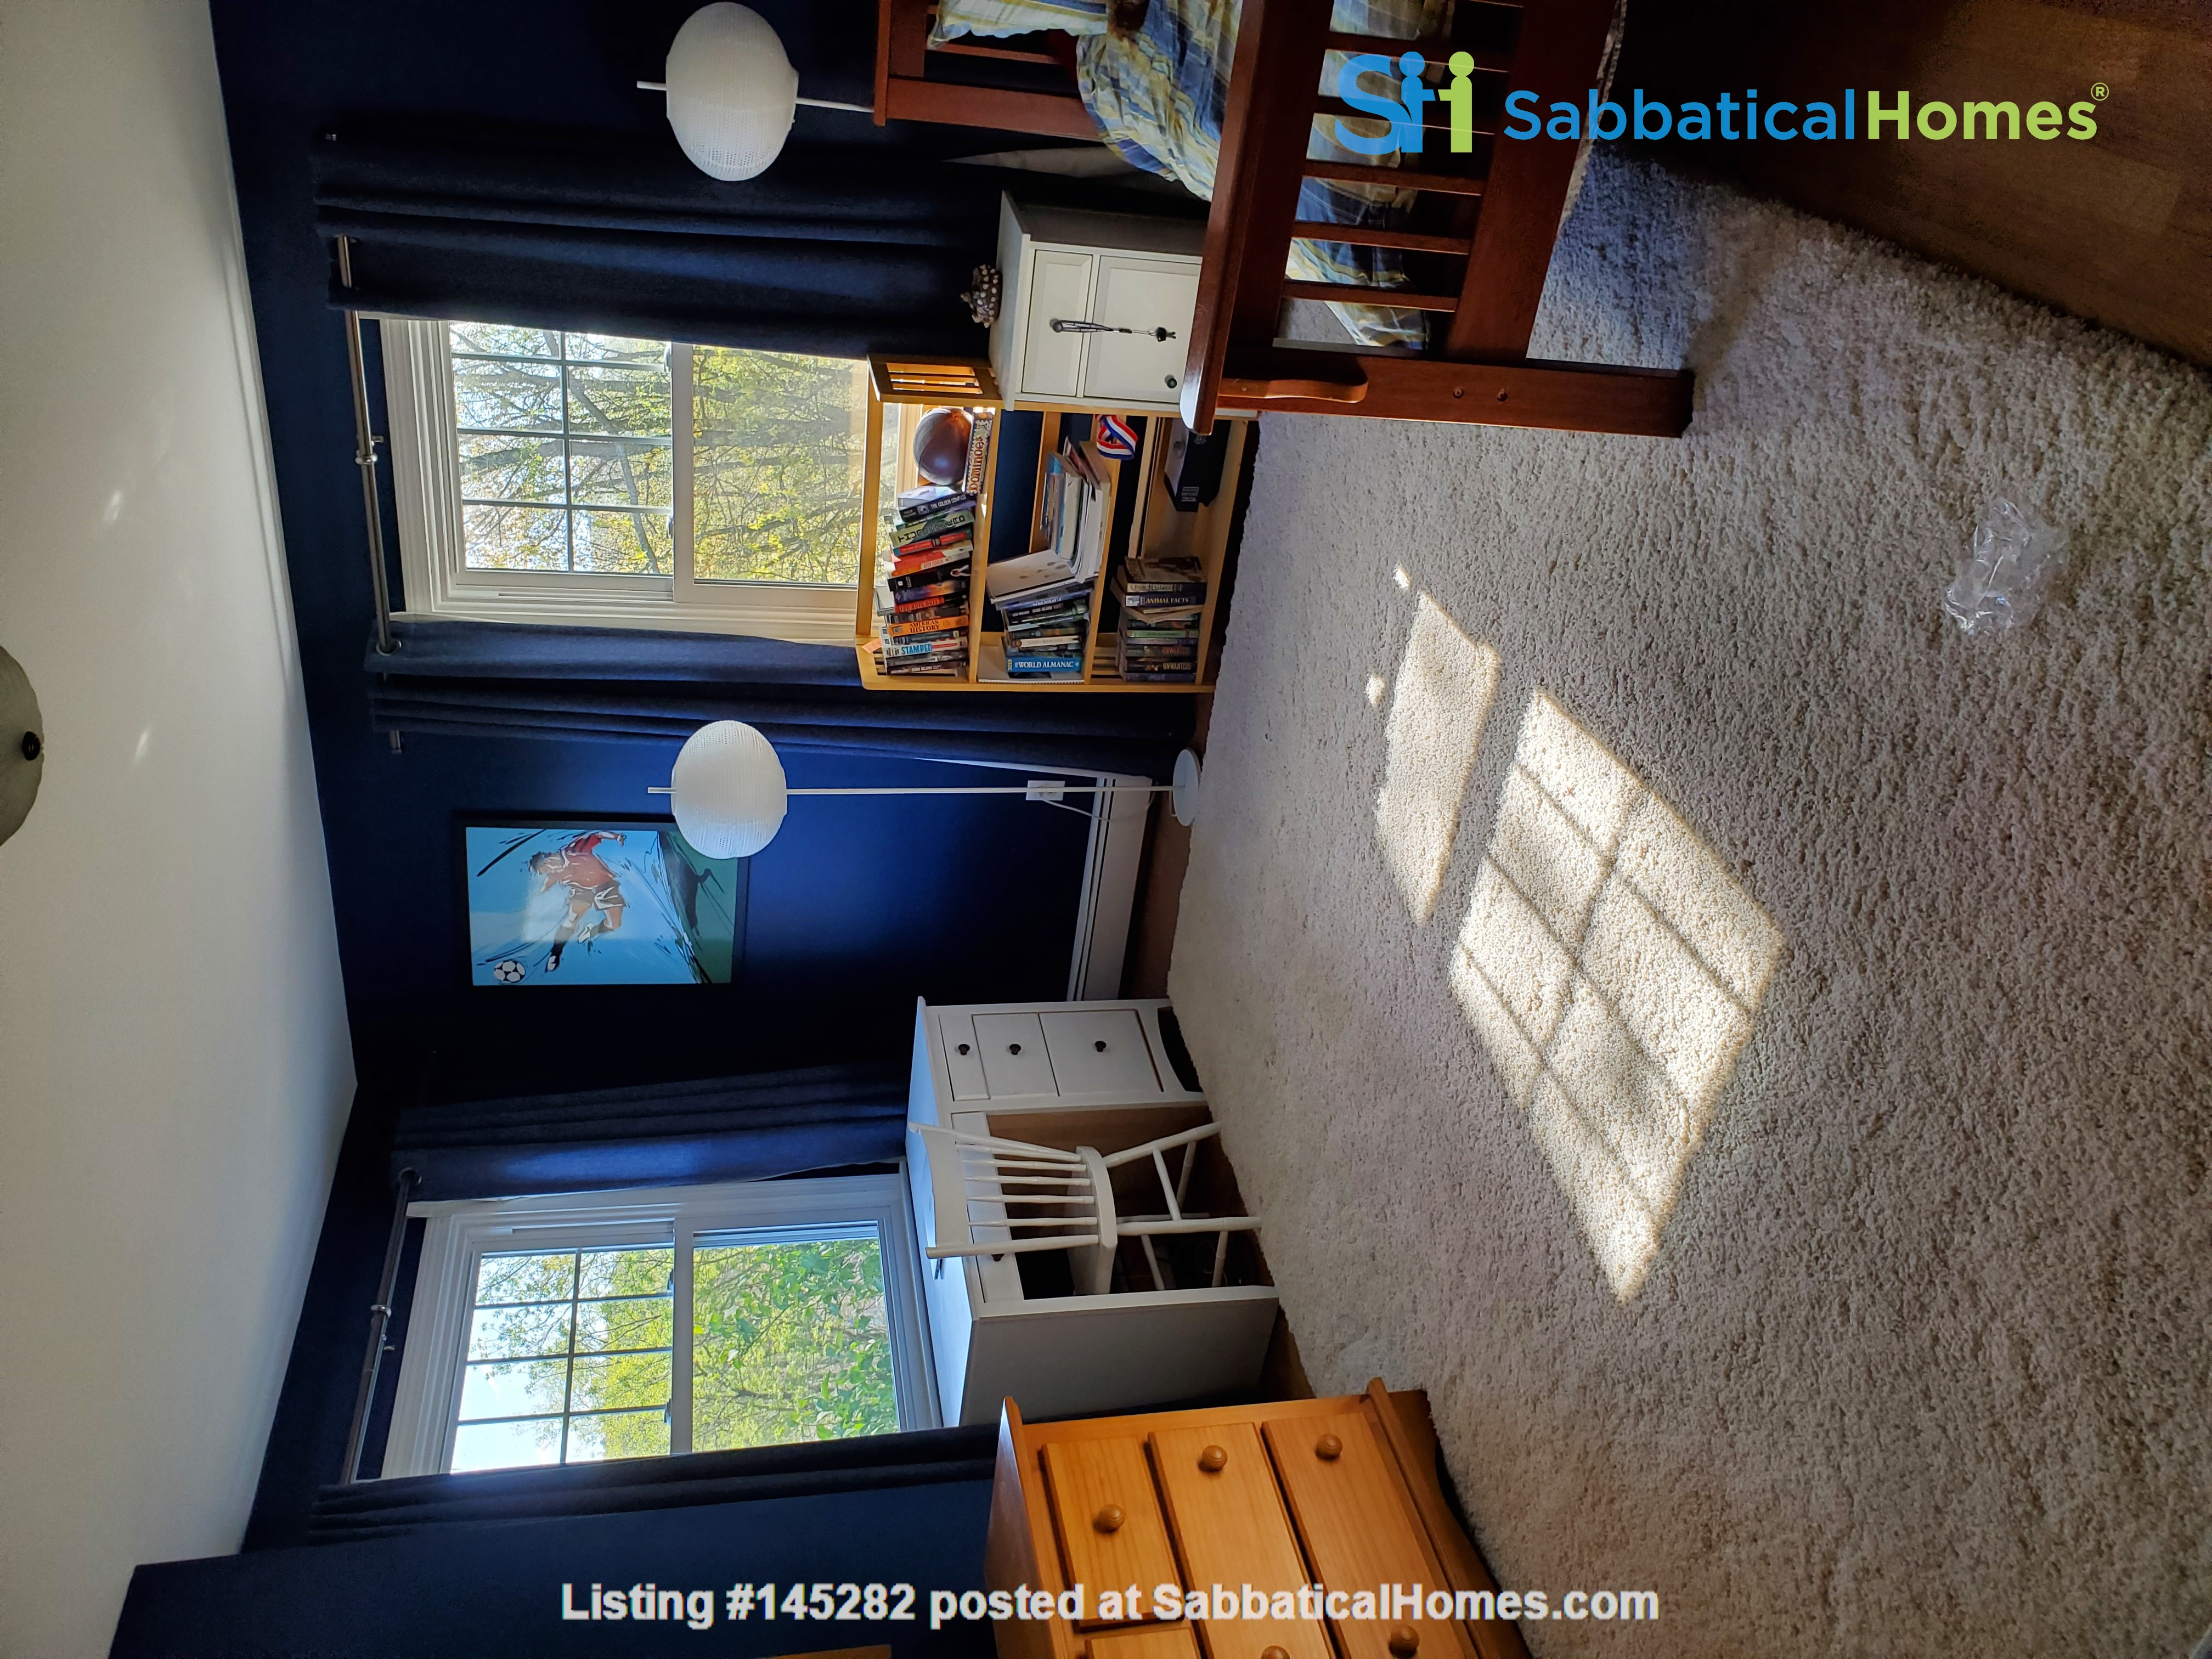 Spacious, Peaceful Getaway in Beautiful Amherst, MA, 4 BR 3.5 ba Home Rental in Amherst, Massachusetts, United States 8